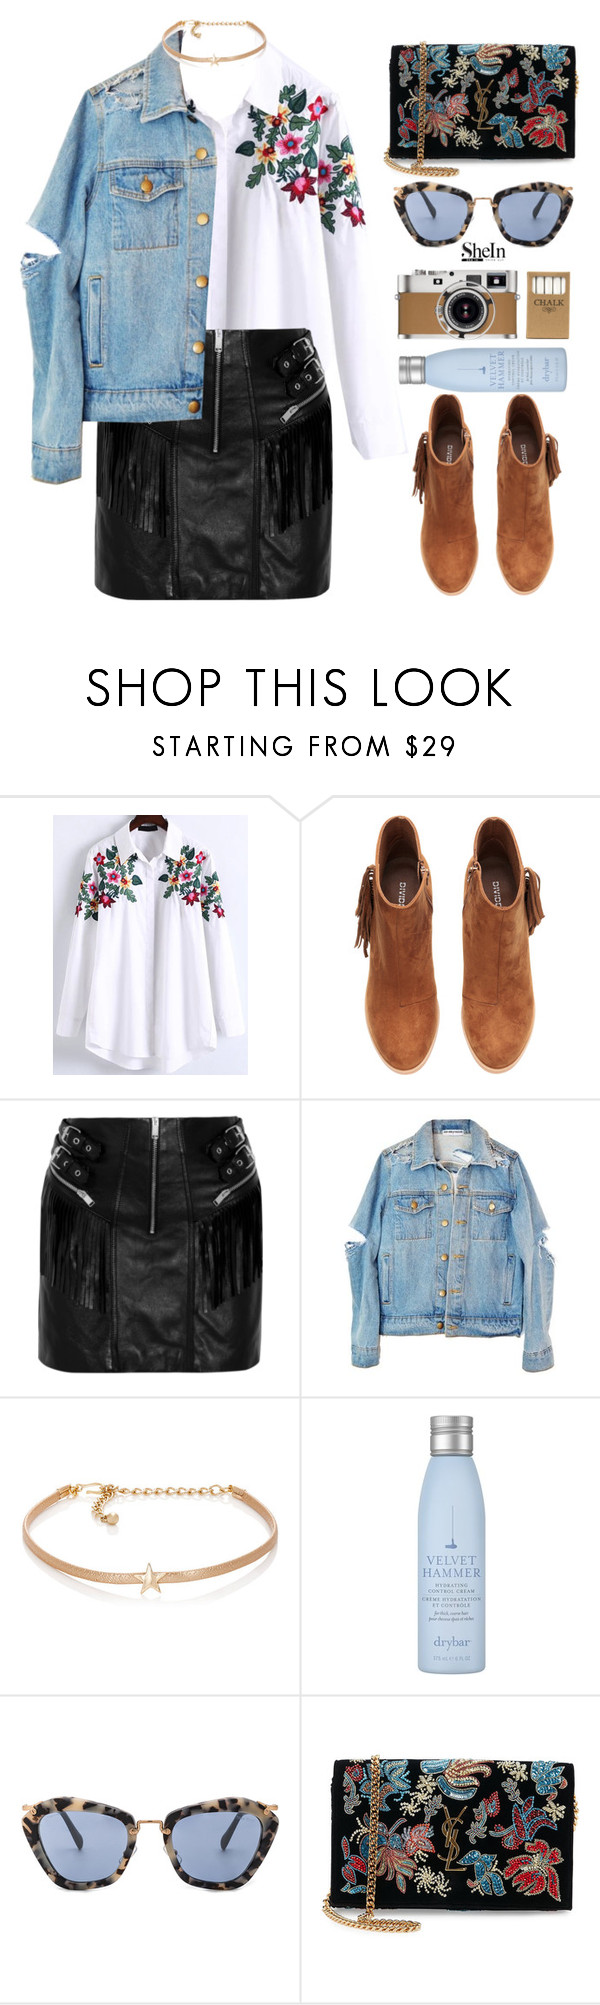 """""""Lets find ourselves lost for hours, until we find ourselves a drink."""" by kristinadyomina ❤ liked on Polyvore featuring WithChic, H&M, Yves Saint Laurent, Kenneth Jay Lane, Drybar, Miu Miu, Hermès and Jayson Home"""